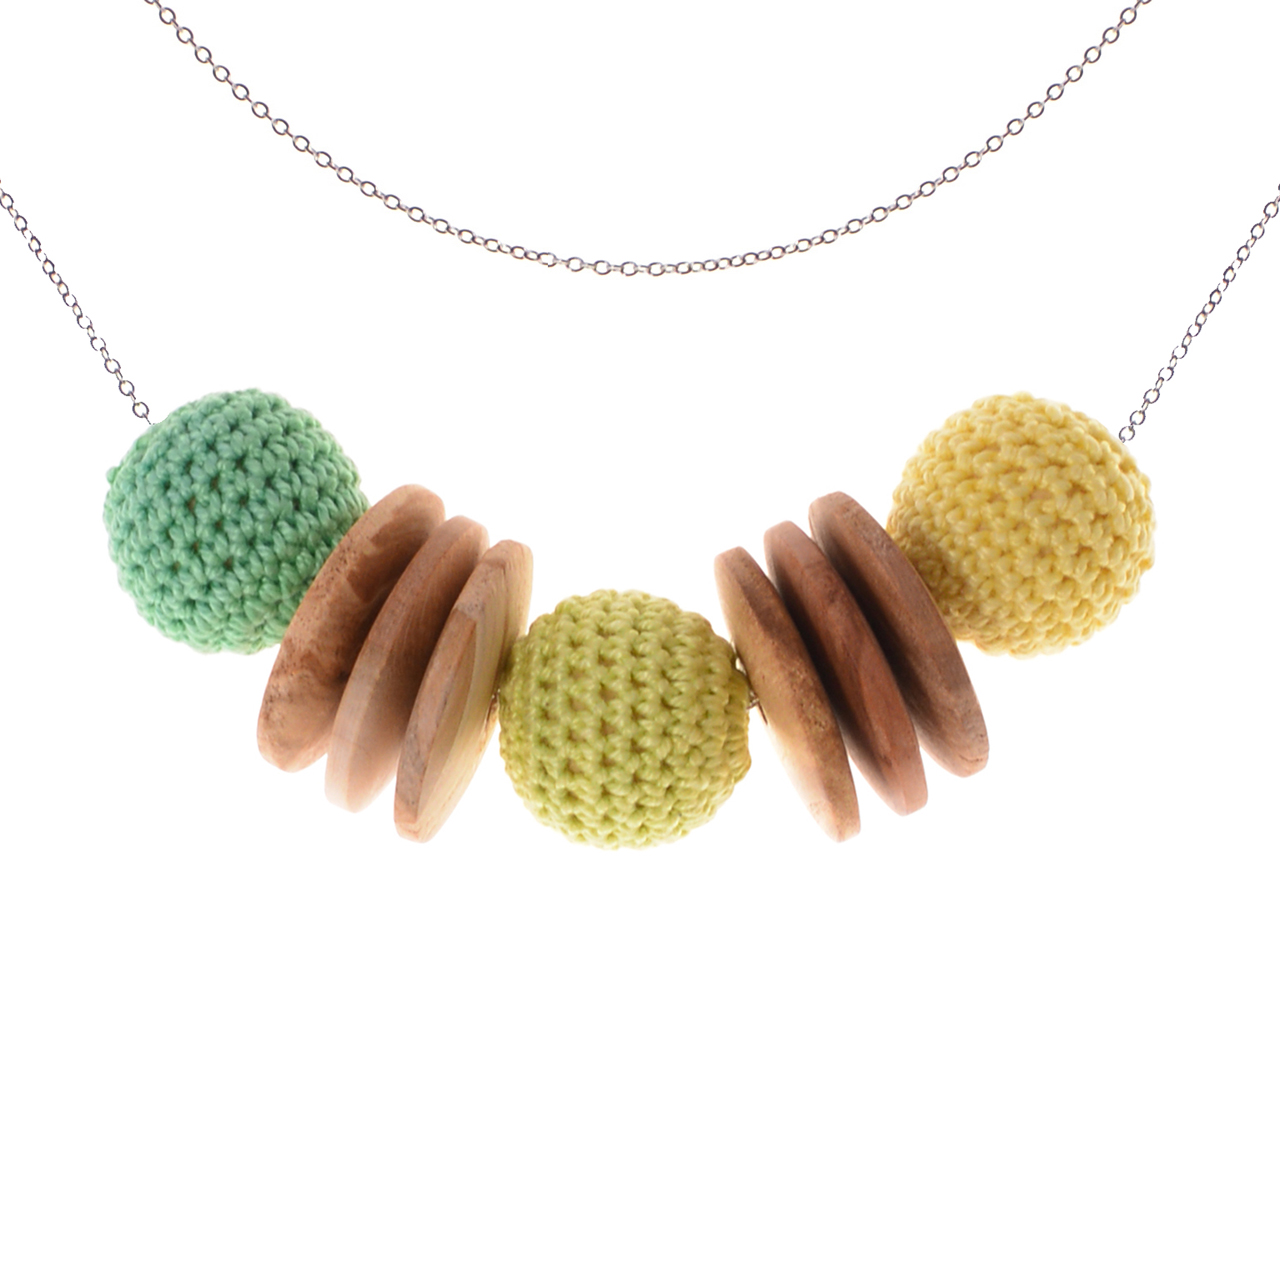 Mon Bijou - Necklace Elegance Nature - Green & Yellow Hues | The Design Gift Shop